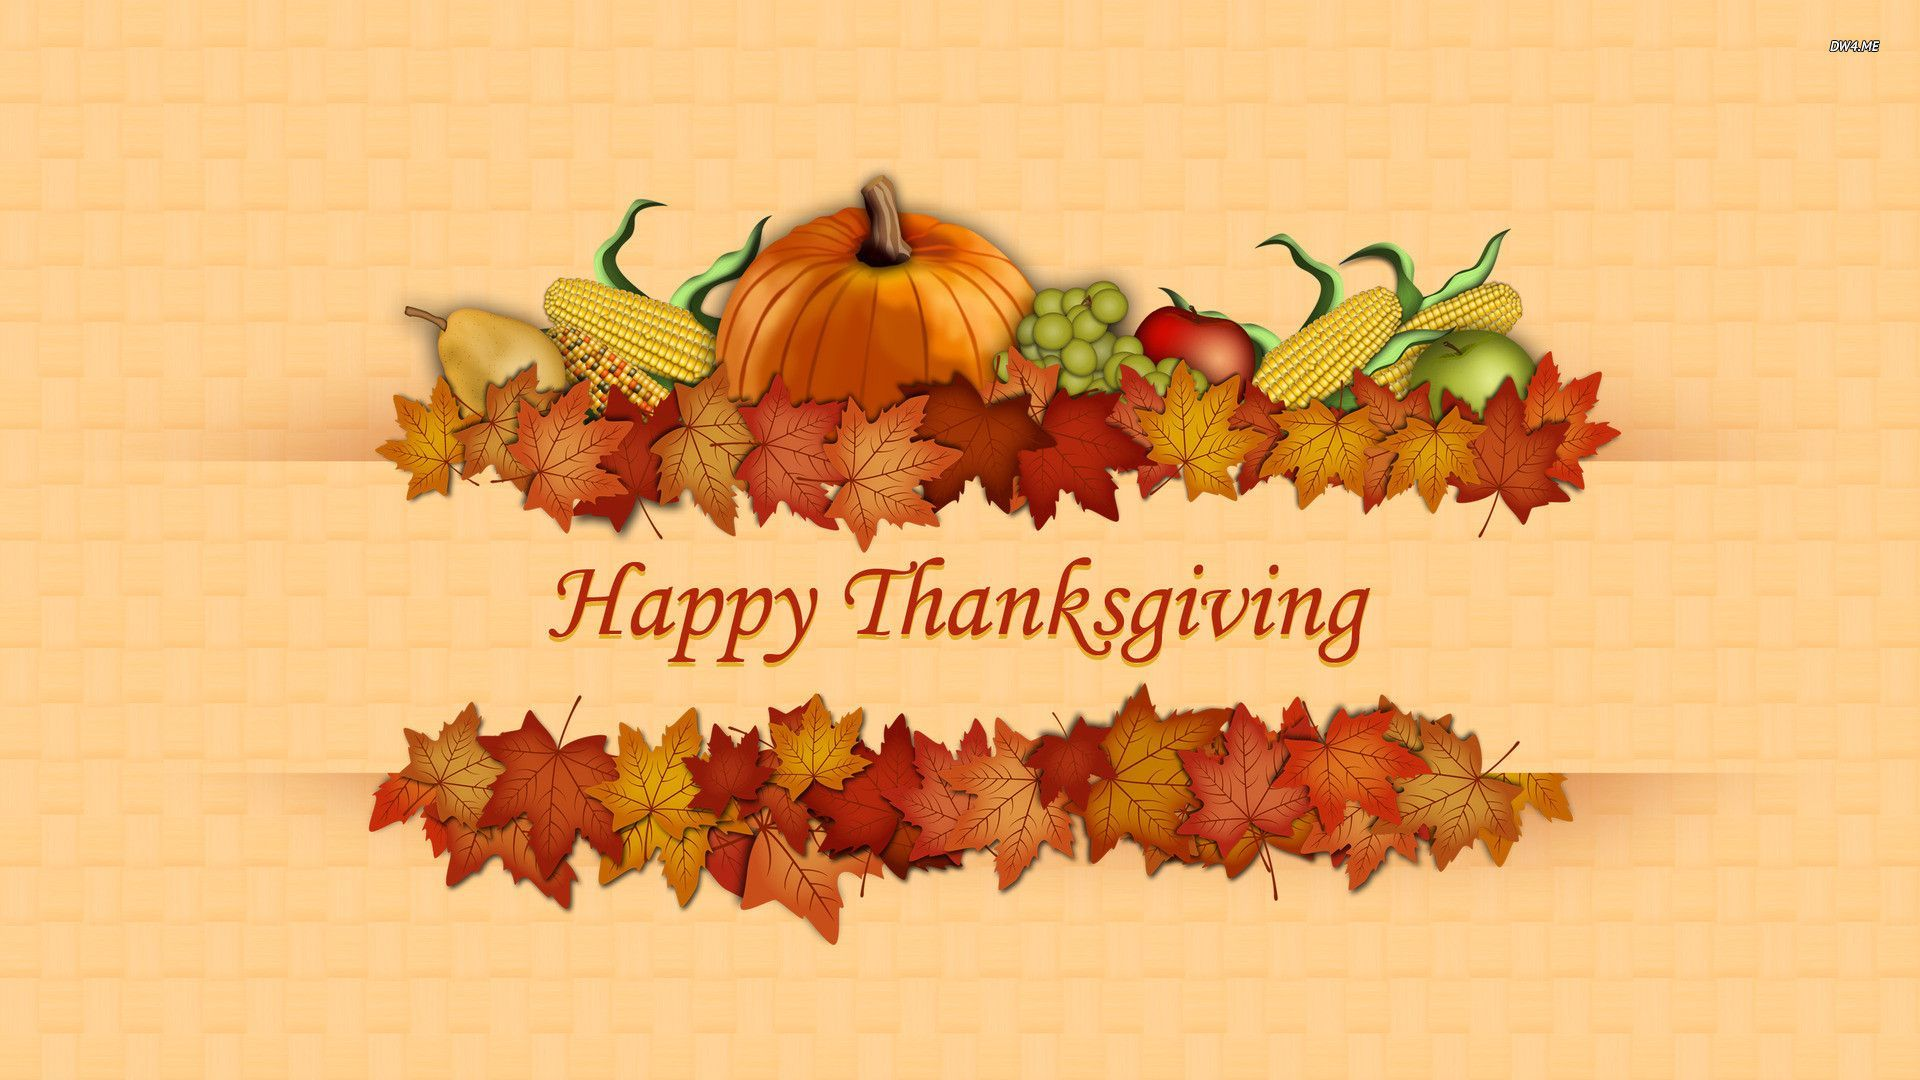 Thanksgiving Free Wallpaper